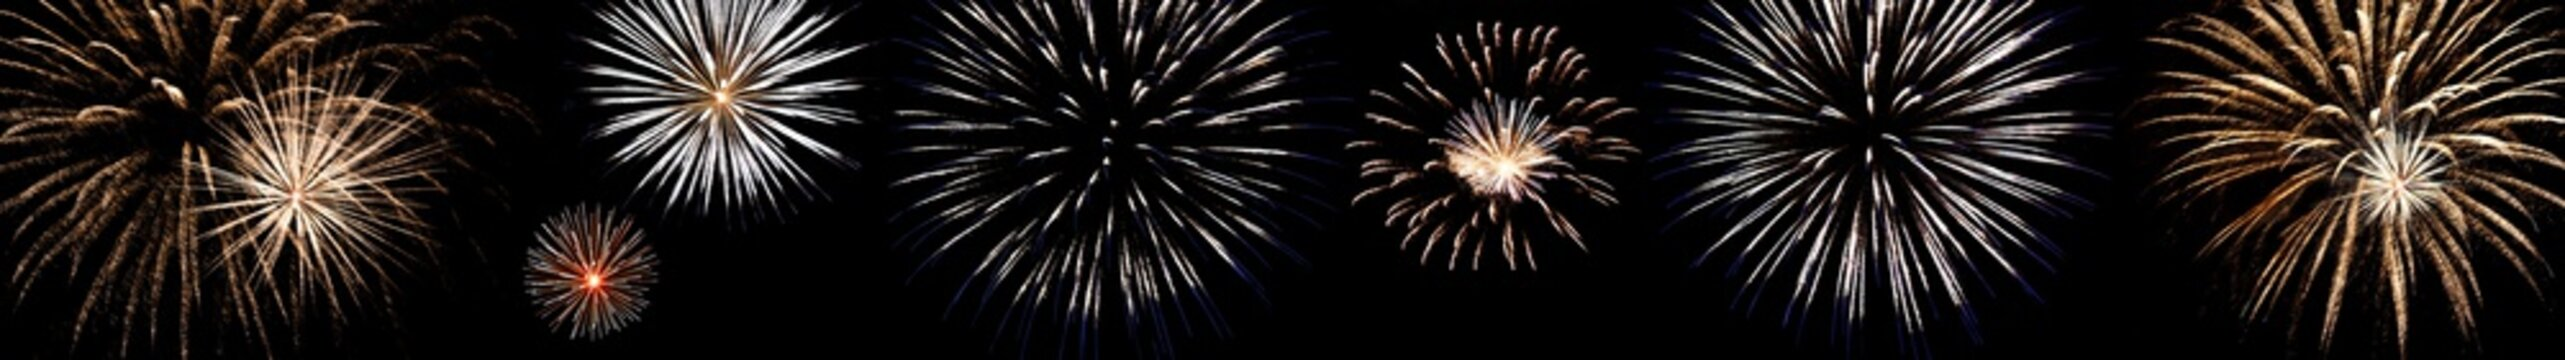 set of multi-colored fireworks with blue and red sparks on an isolated black background for the design of the holidays; the new year; as well as the independence day on July 4